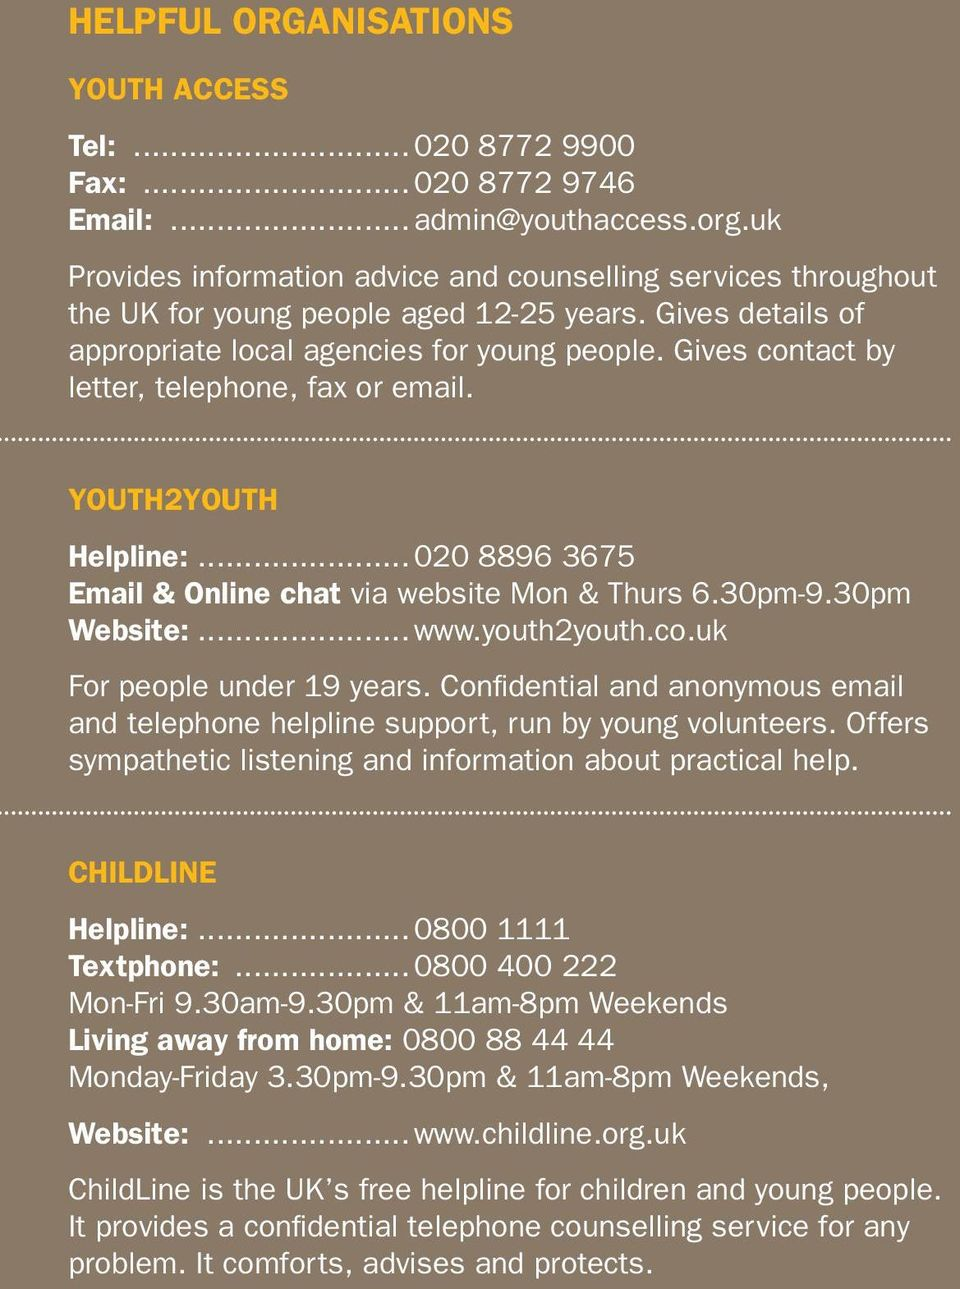 30pm-9.30pm Website:...www.youth2youth.co.uk For people under 19 years. Confidential and anonymous email and telephone helpline support, run by young volunteers.